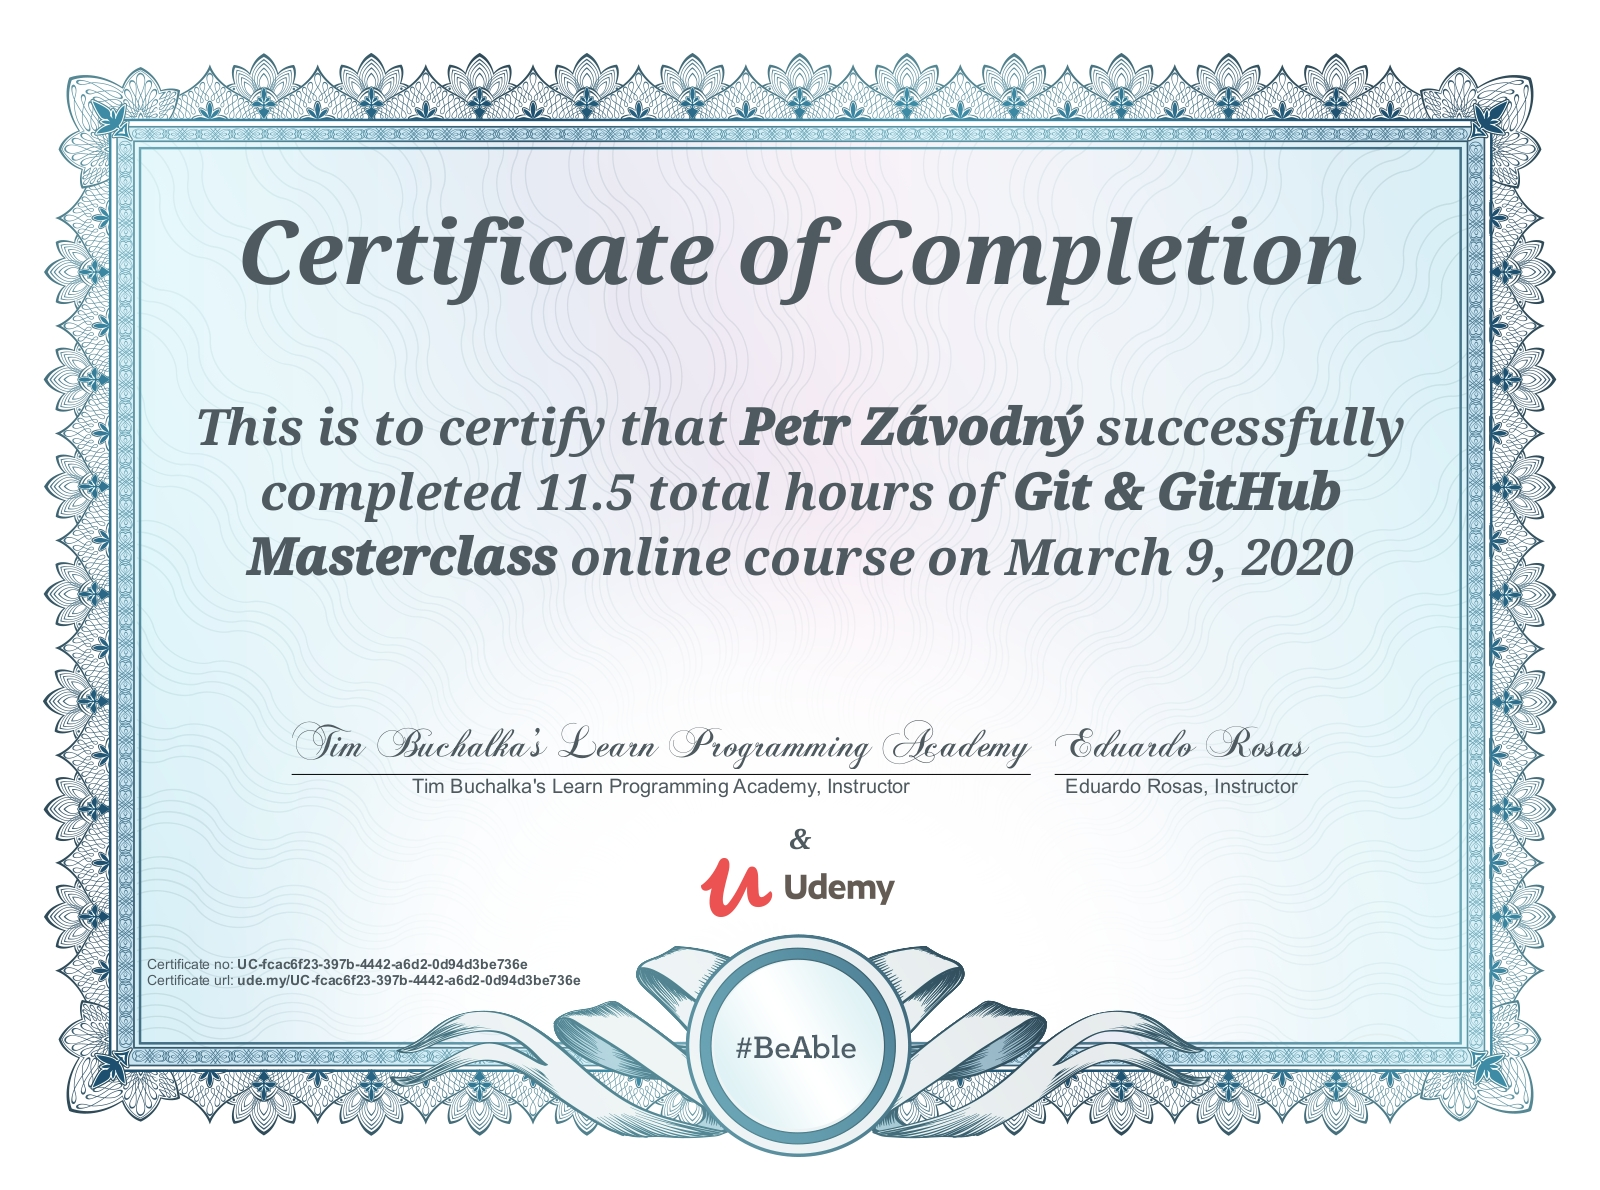 Git & GitHub Mastery Course Certificate